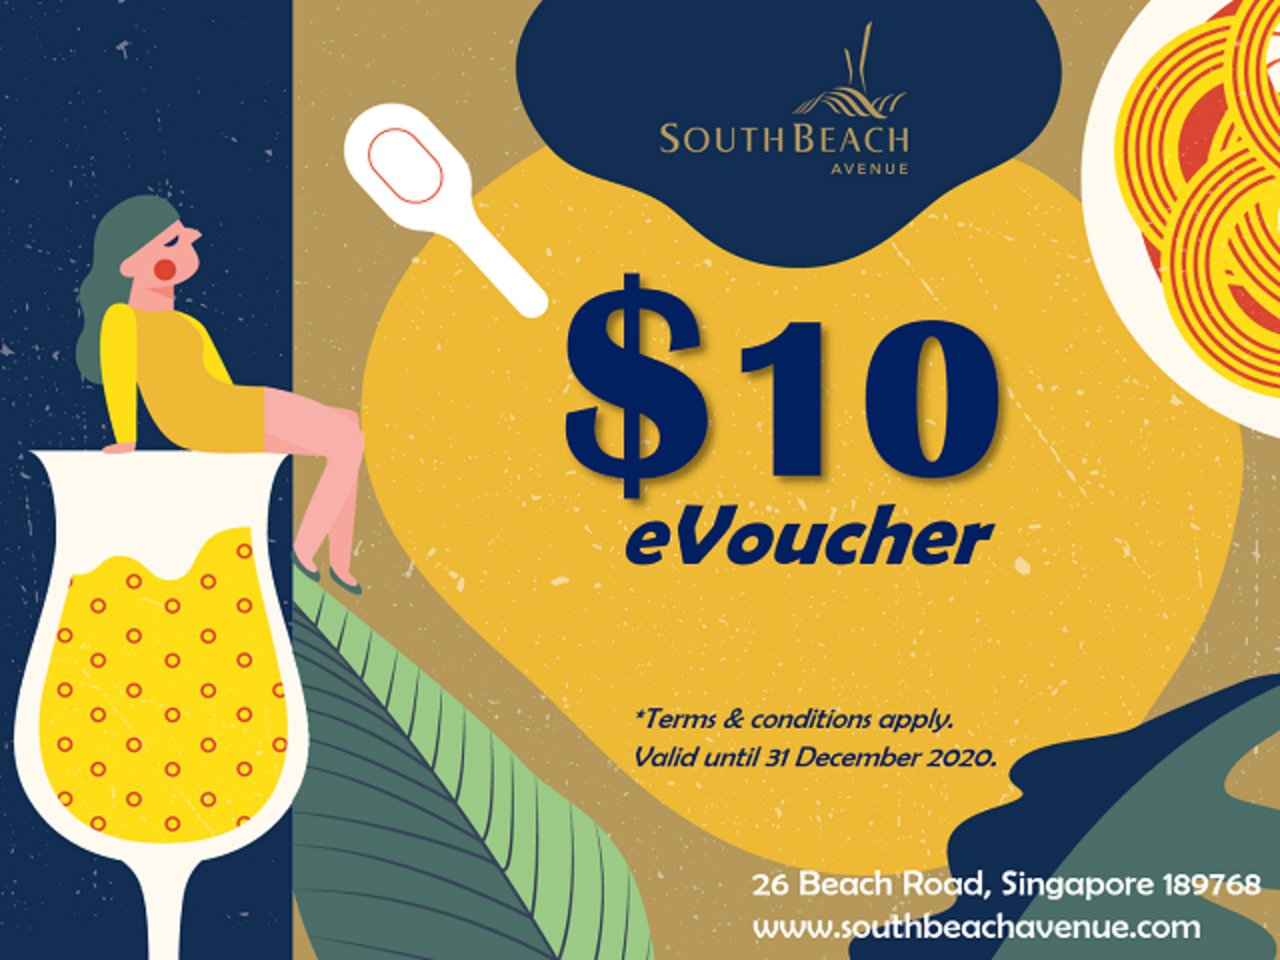 <10.10 Exclusive !> South Beach Avenue $10 Voucher at only $1 !